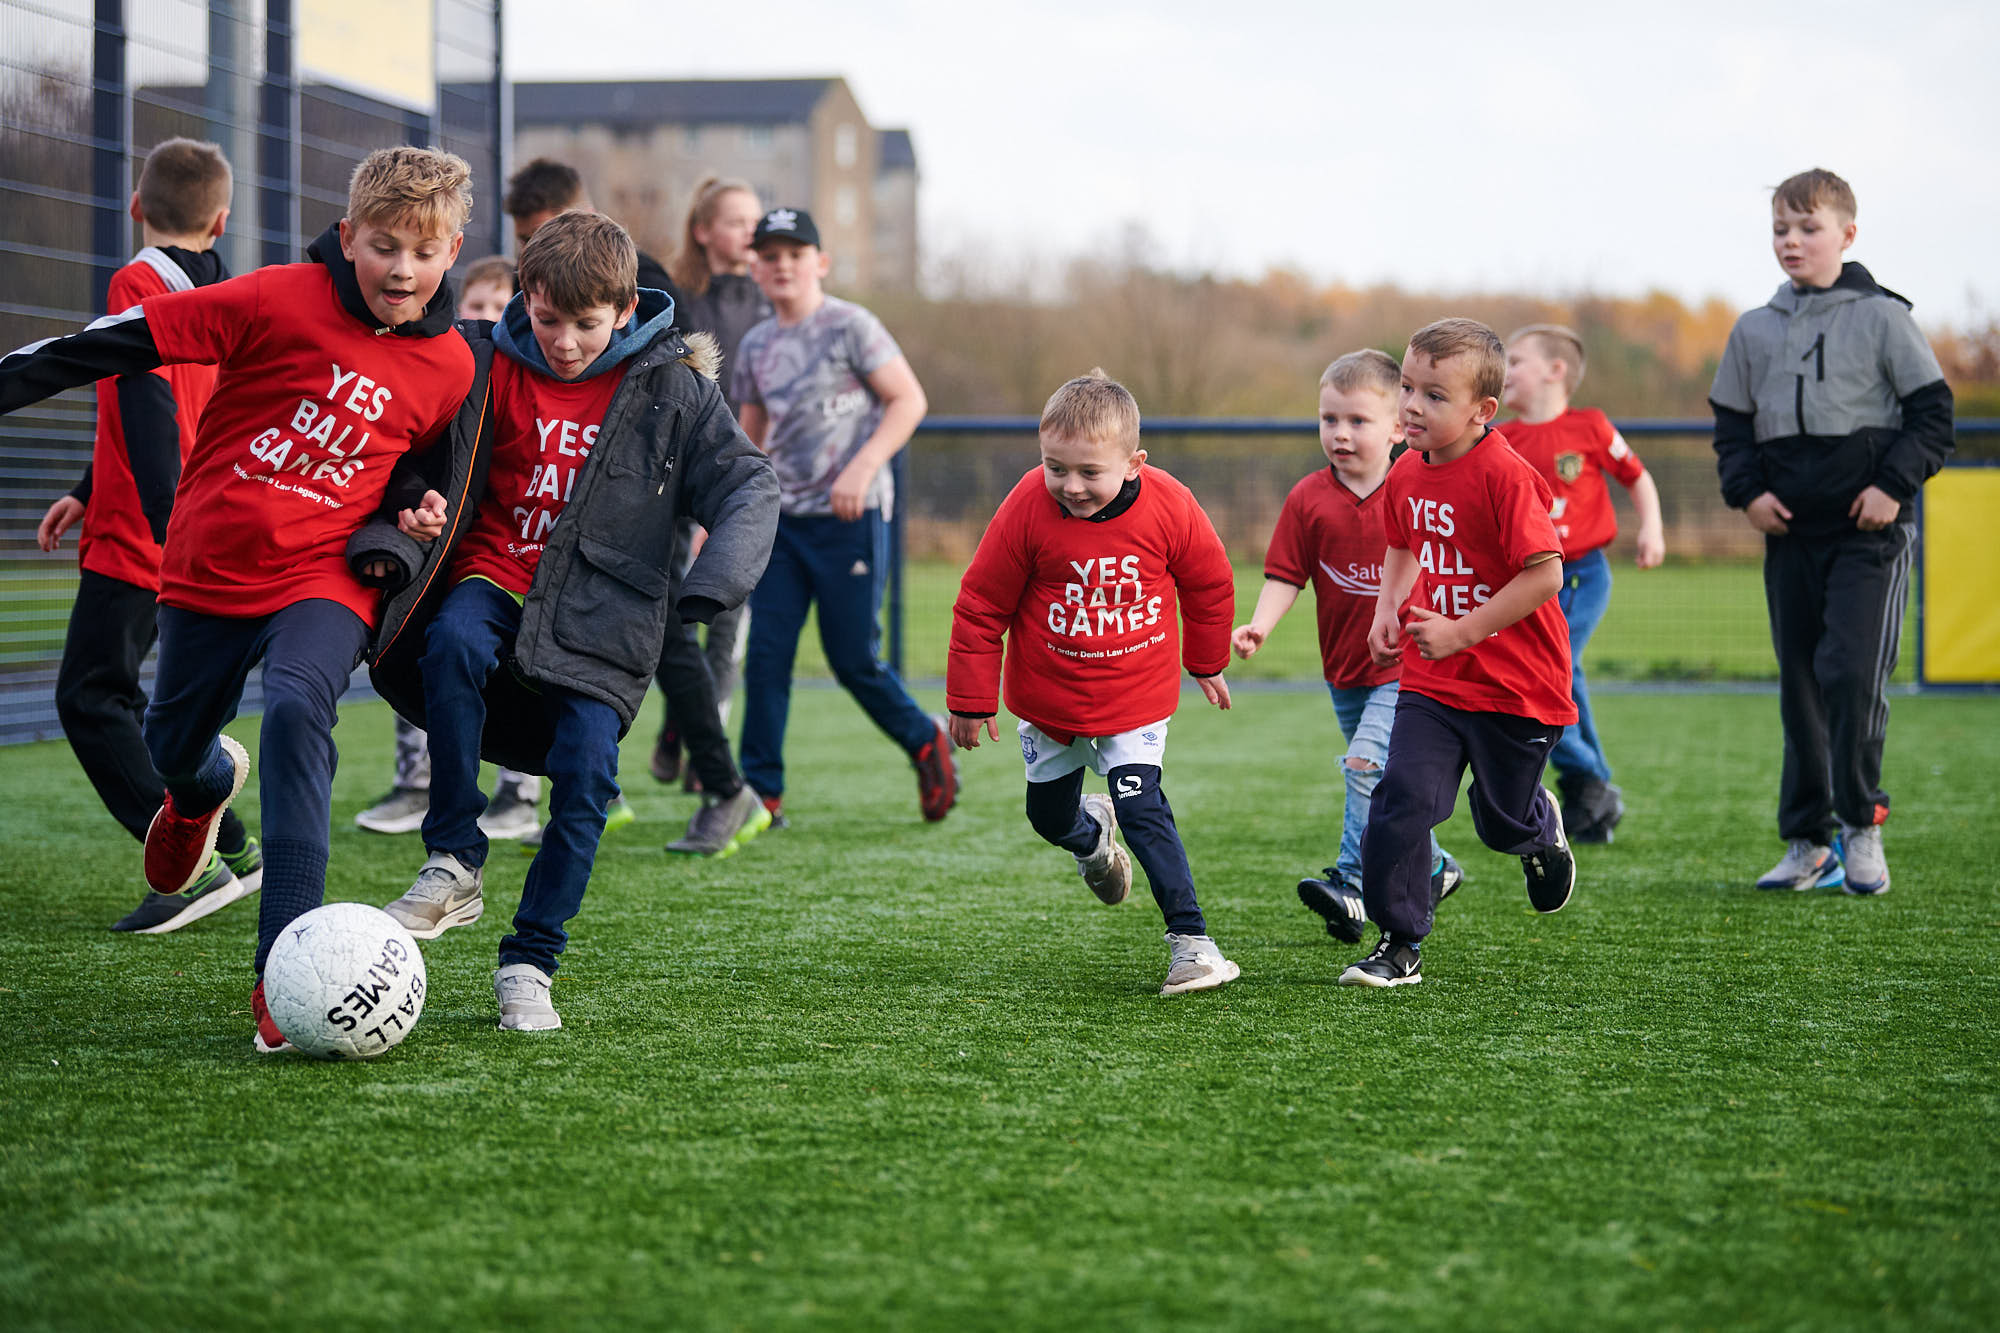 Children playing football on a Cruyff Court in Aberdeen